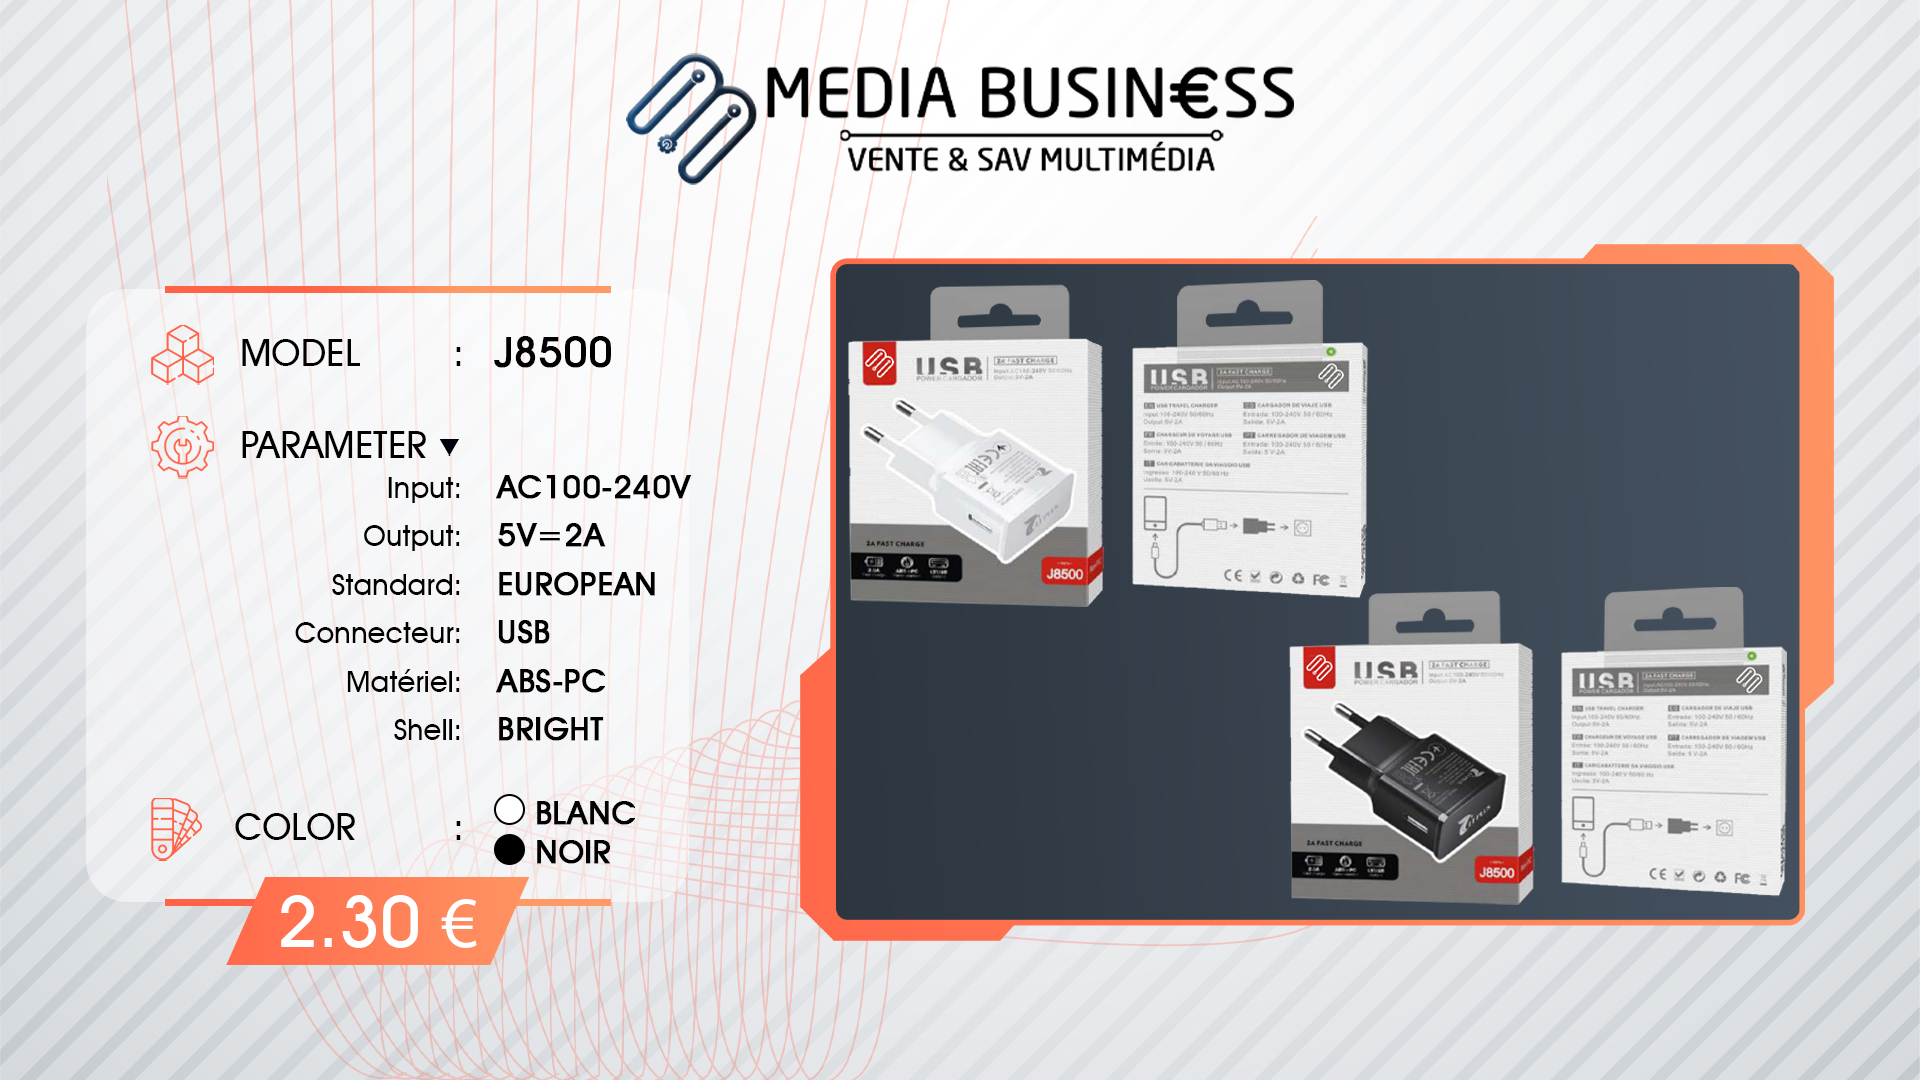 J8500 MEDIA BUSINESS SCHILTIGHEIM